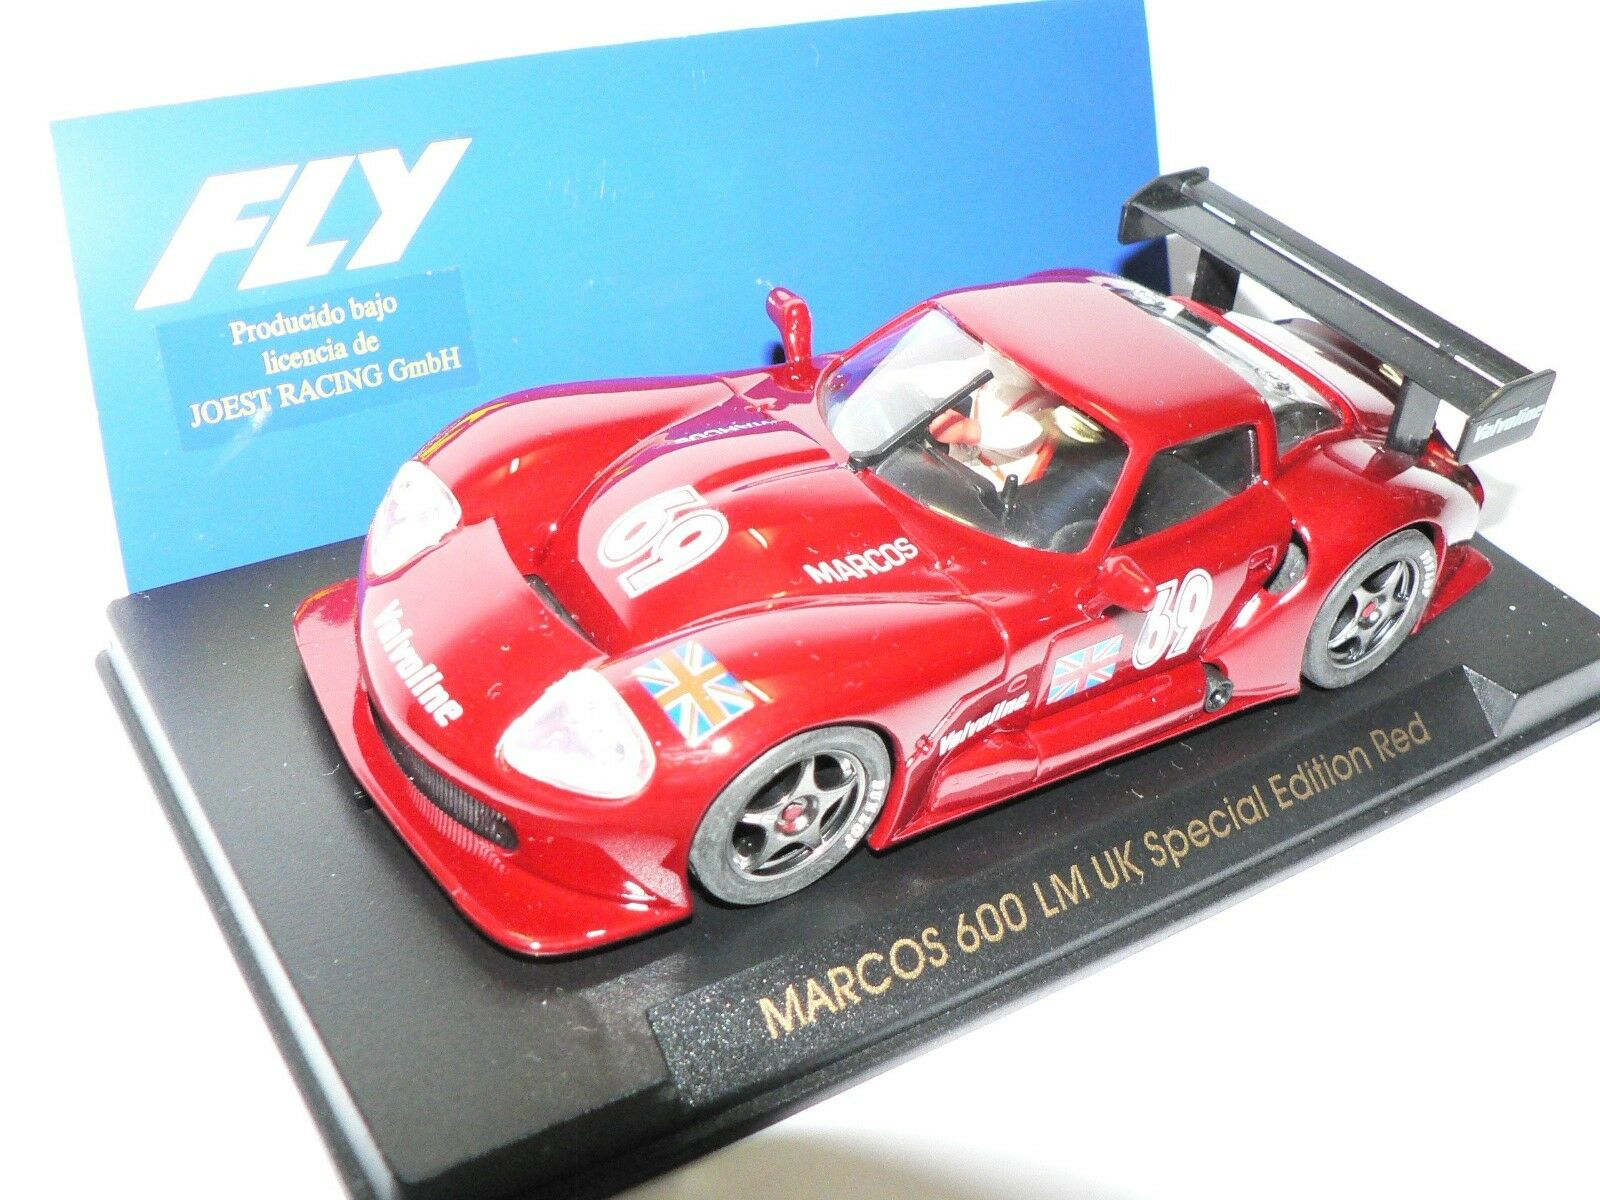 Fly Marcos 600 Lm UK Special Edition Red E21 Burdeos New